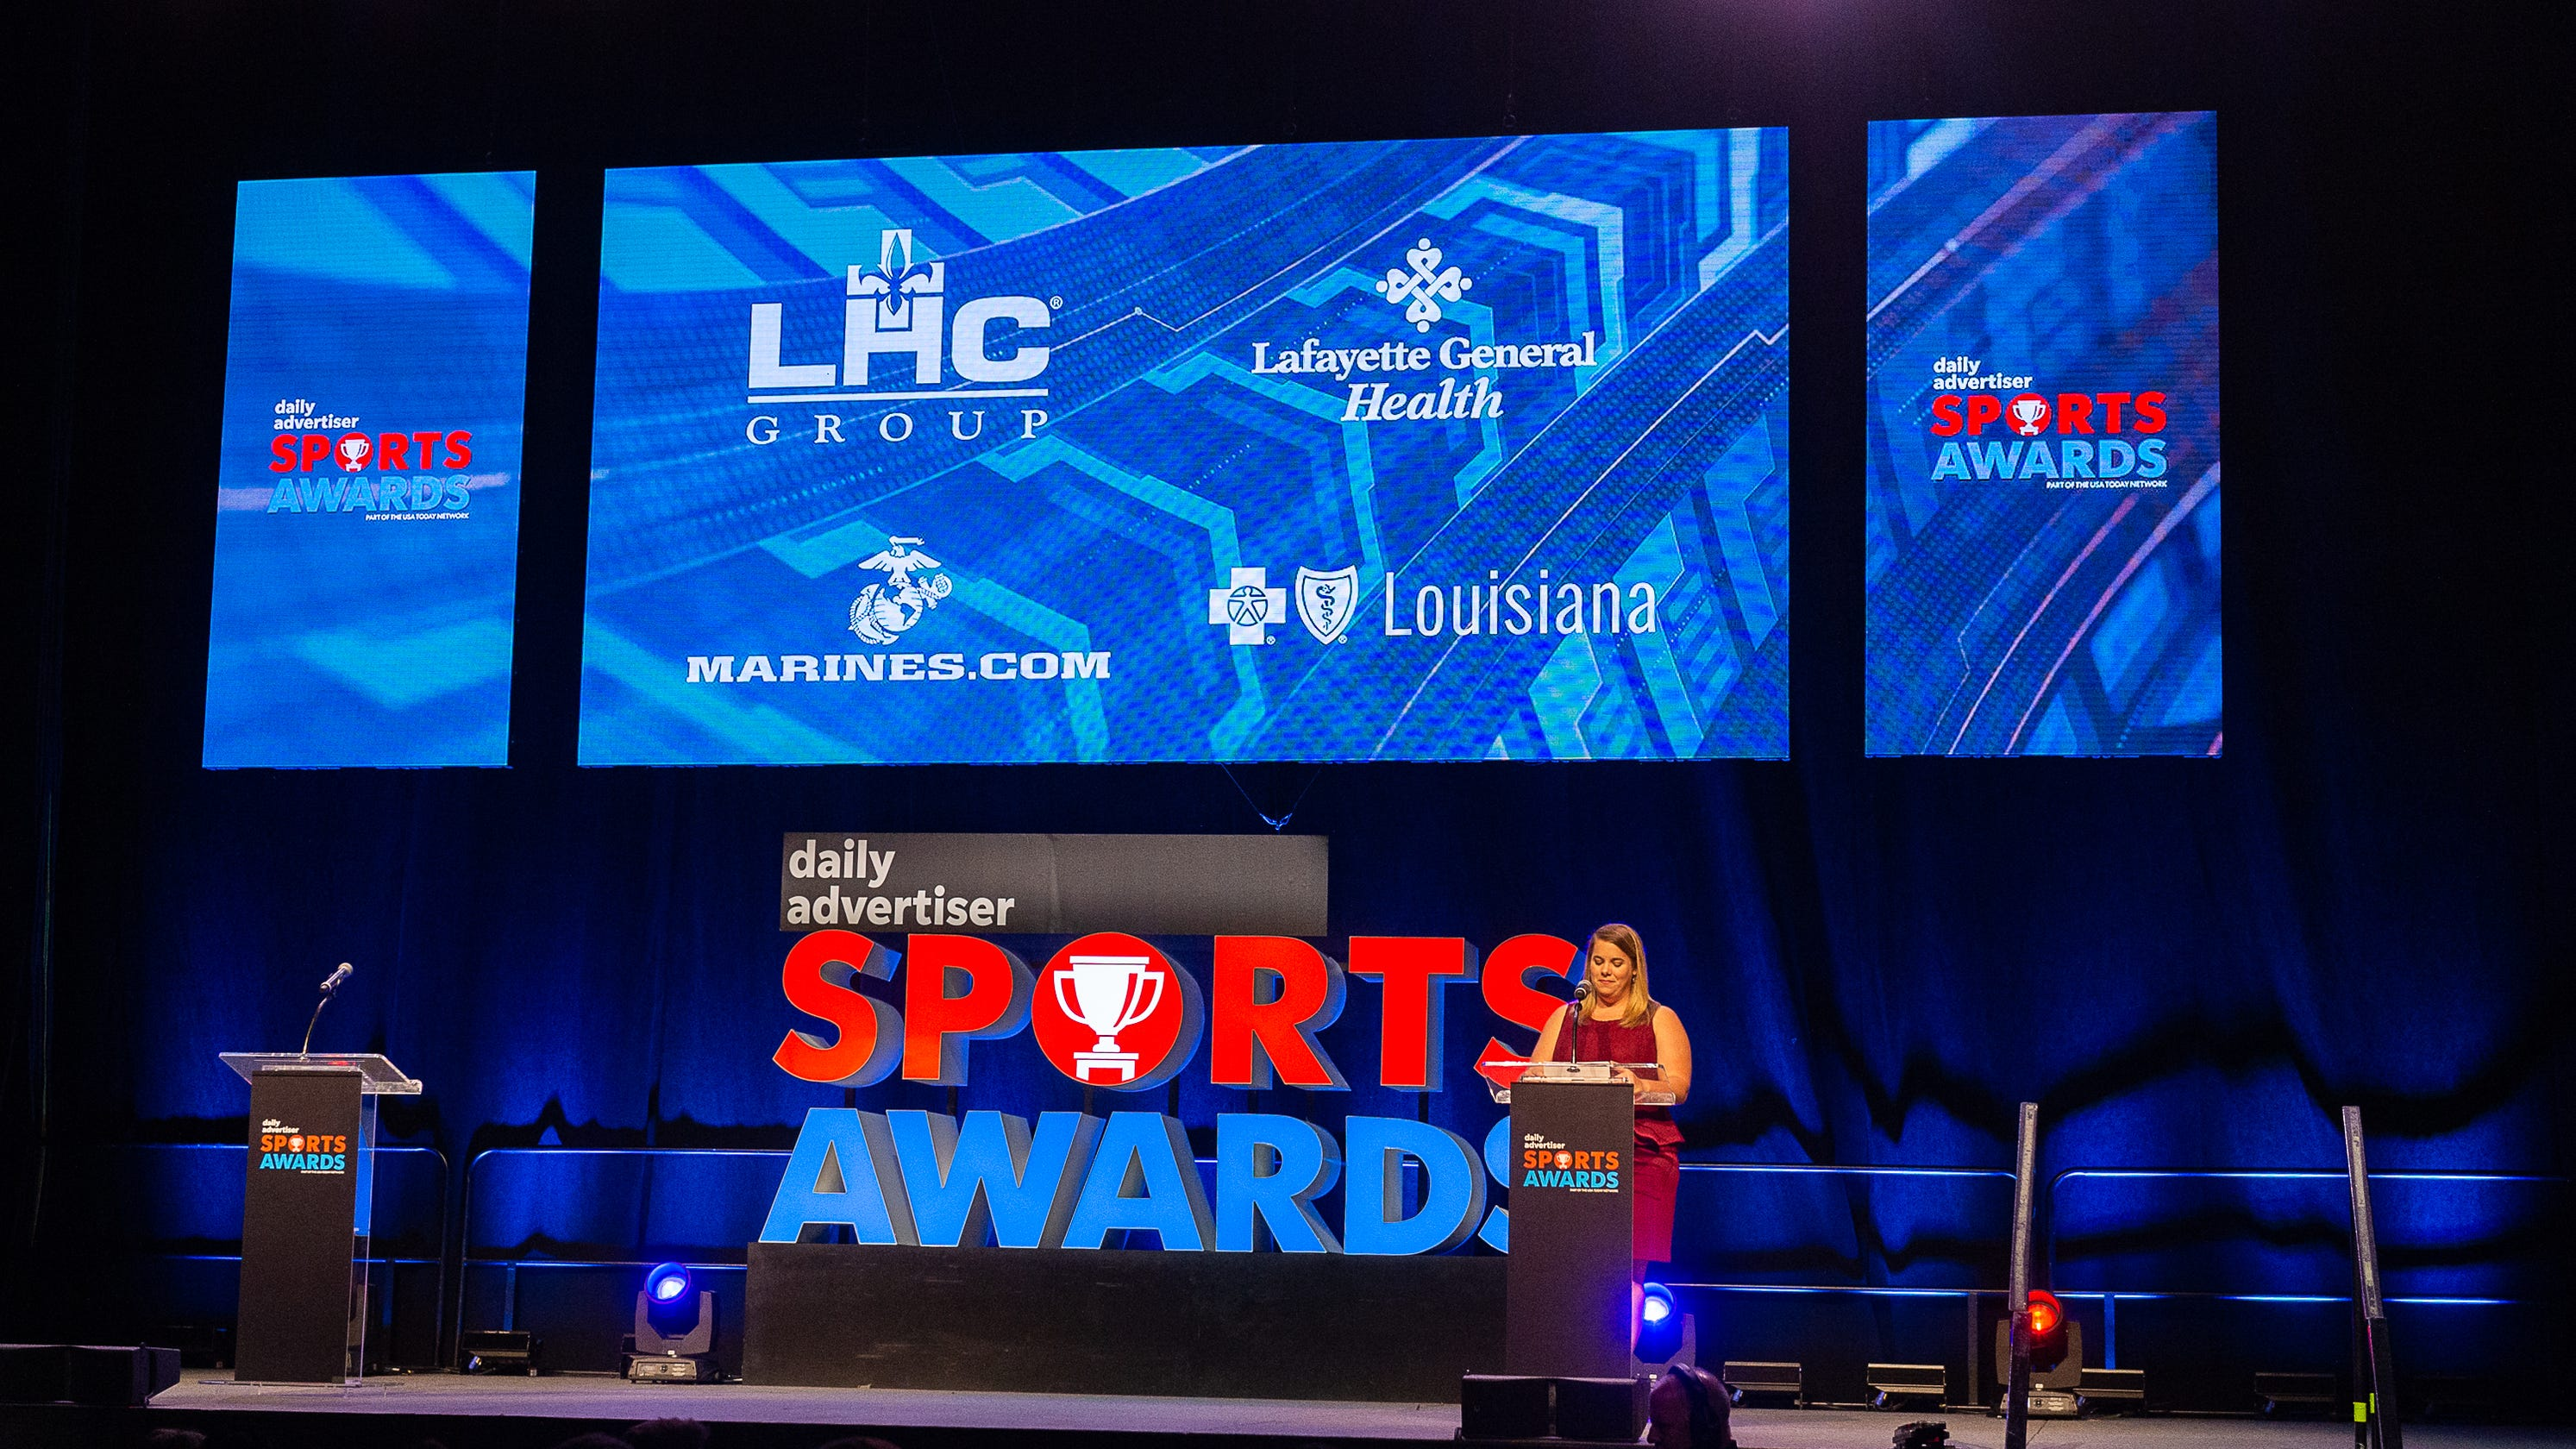 Watch the Daily Advertiser Sports Awards 2019 ceremony